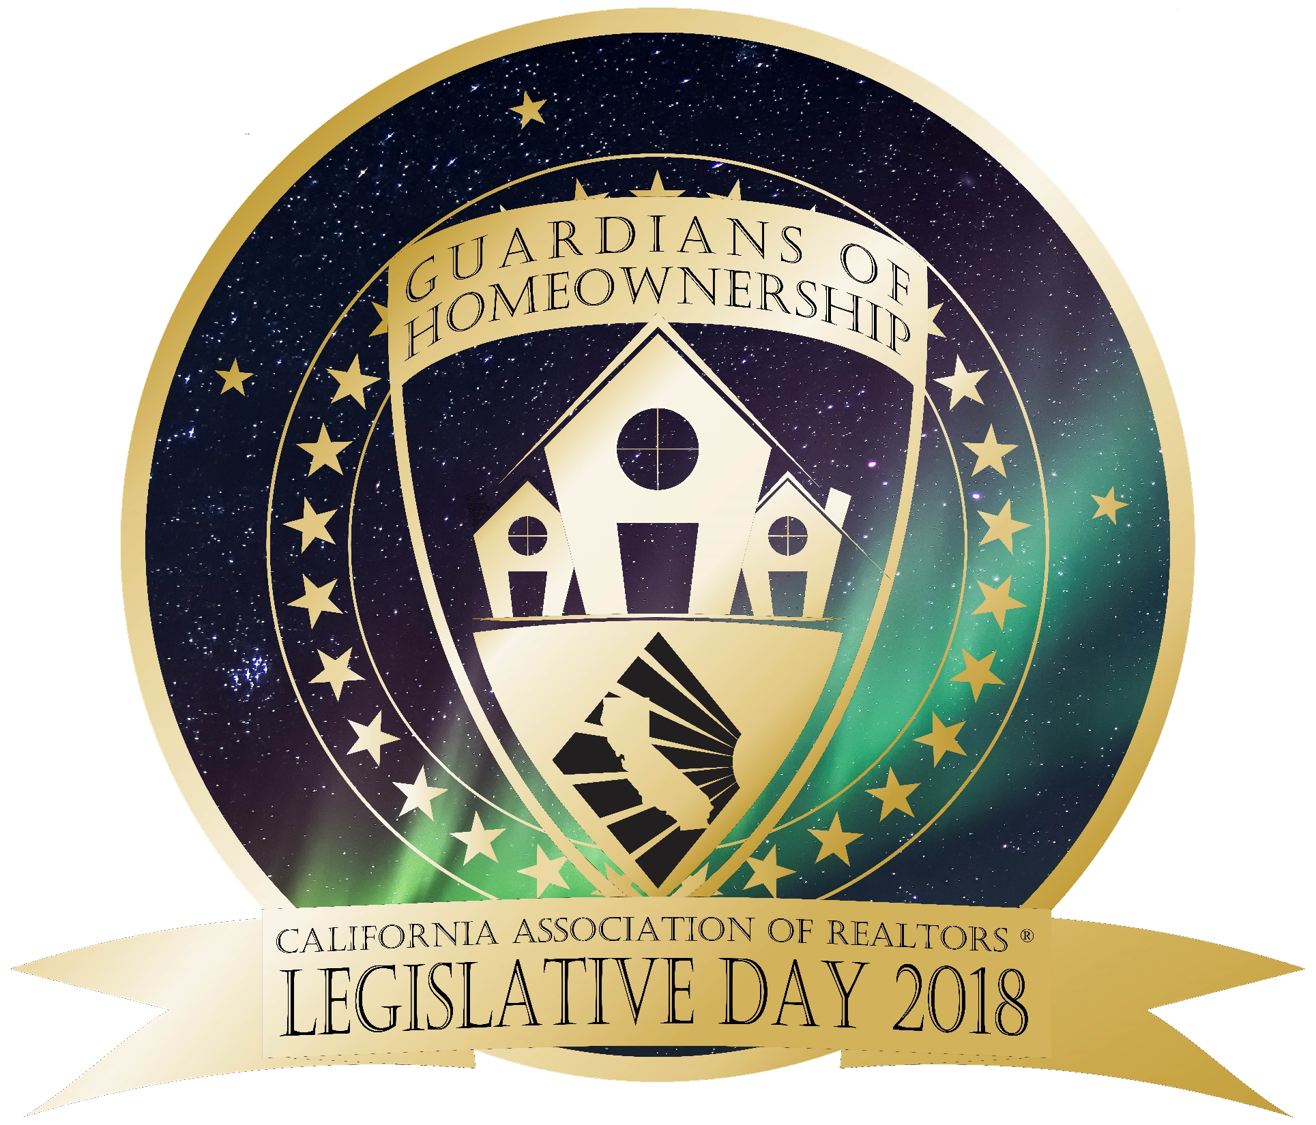 Legislative Day 2018 logo